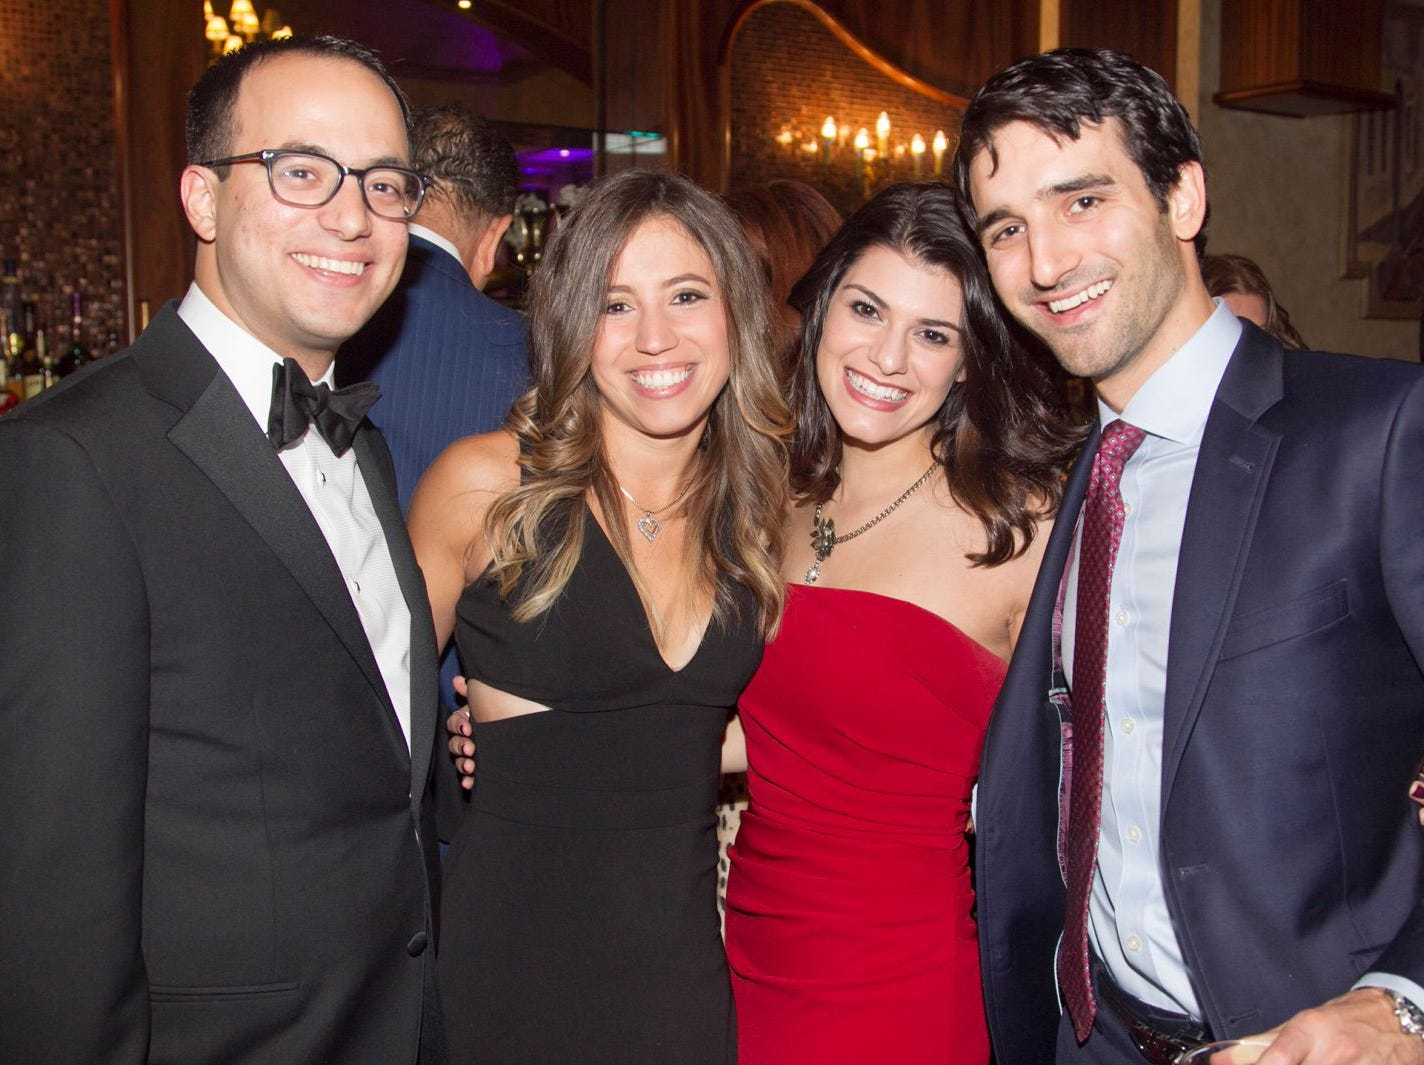 George Soussou, Sophia Zigouras, maria Hera, Alexandros DiPlas. Saint John the Theologian 50th Anniversary gala Dinner at The Venetian in Garfield. 10/04/2018